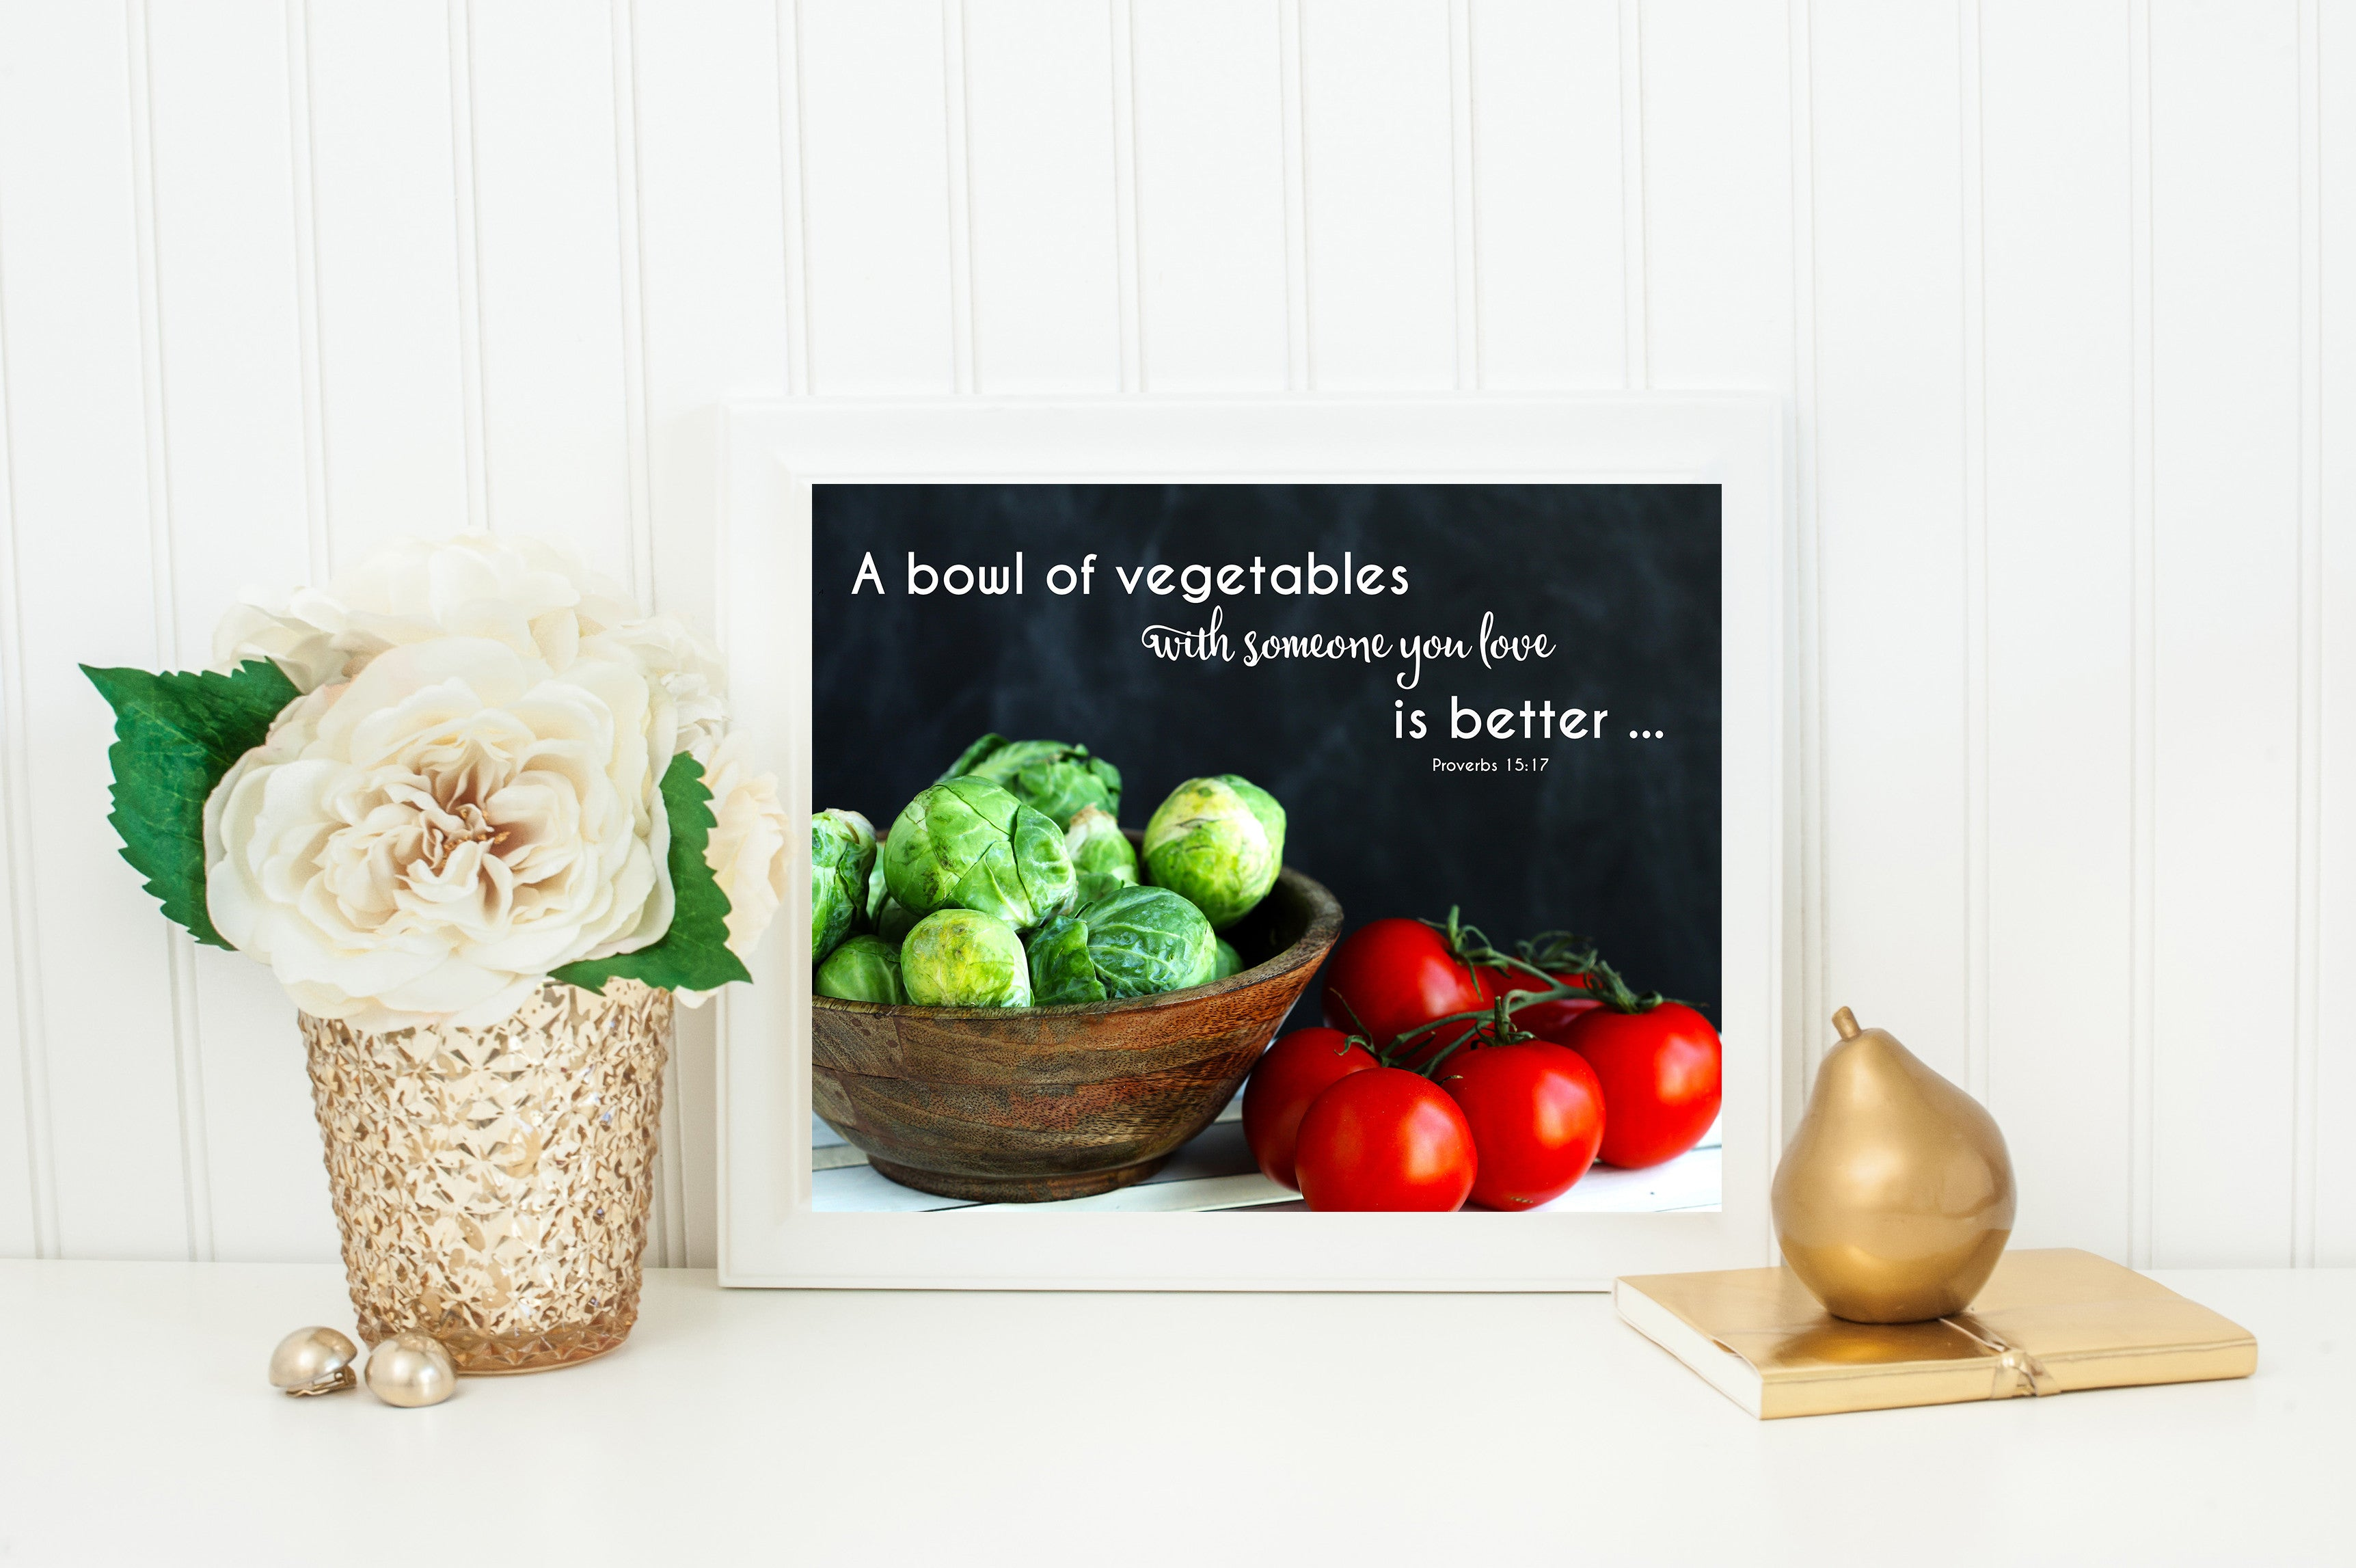 A bowl of vegetables With Someone you Love is better bible verse Proverbs 15:17 Professional still life photography art of the word of God. Prints and canvas